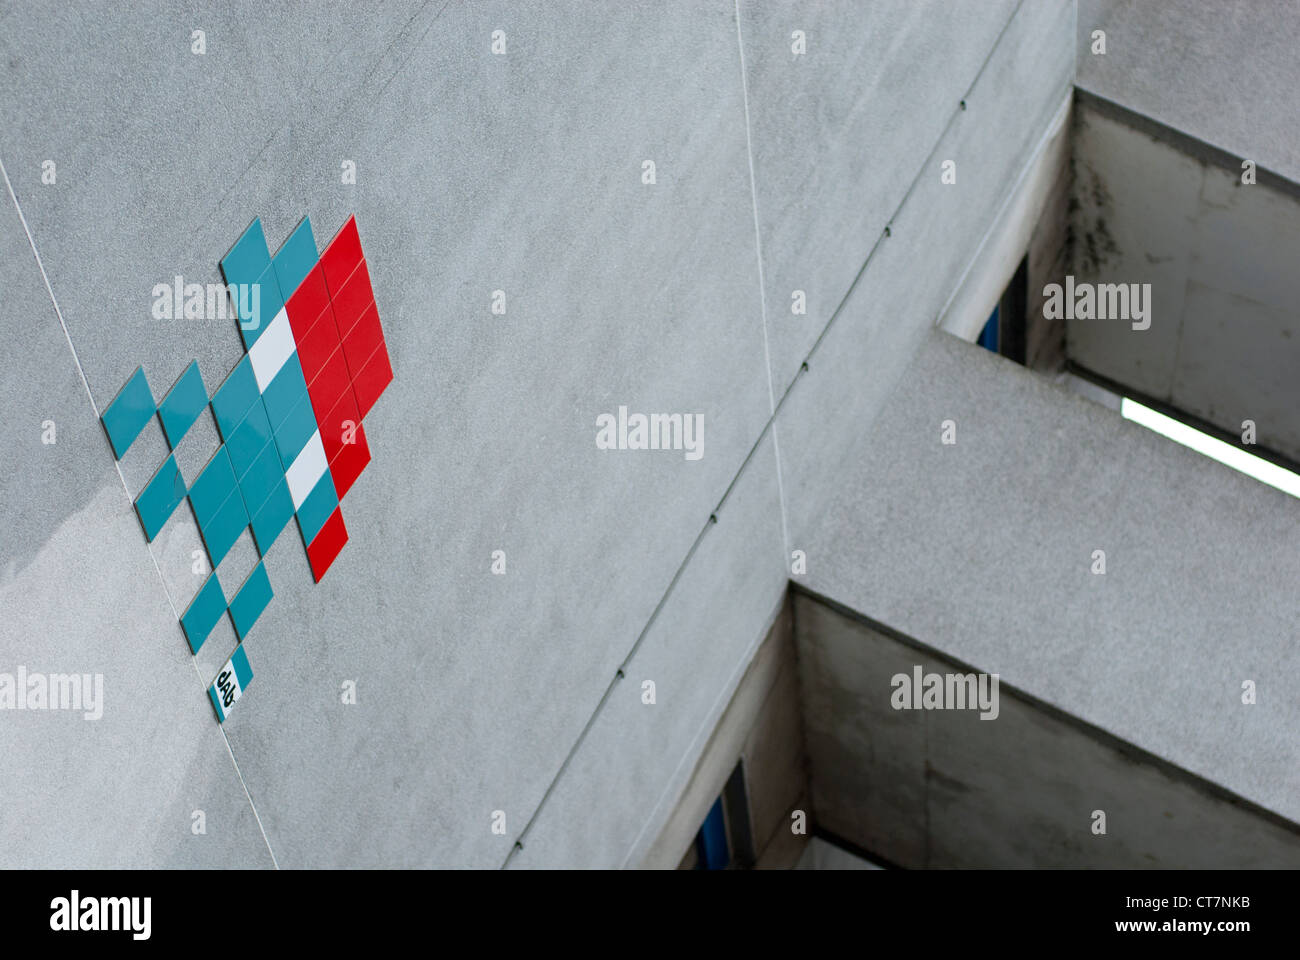 A different take on street graffiti using tiles to recreate a arcade space invader. - Stock Image